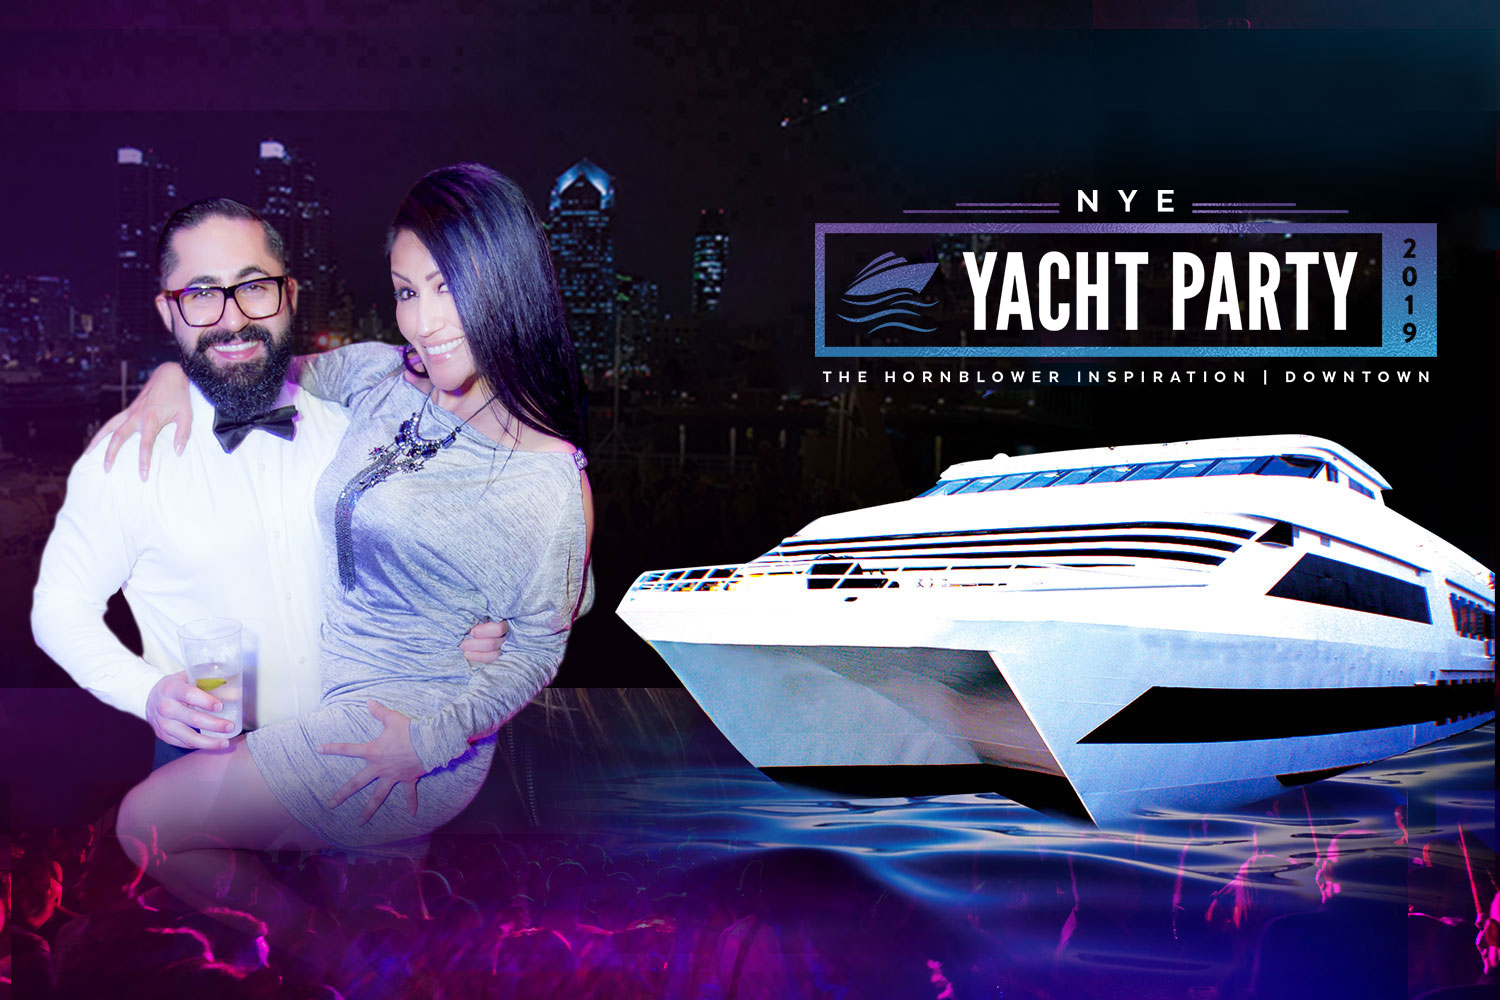 Nye Yacht Party 2019 Vavi Sport Amp Social Club